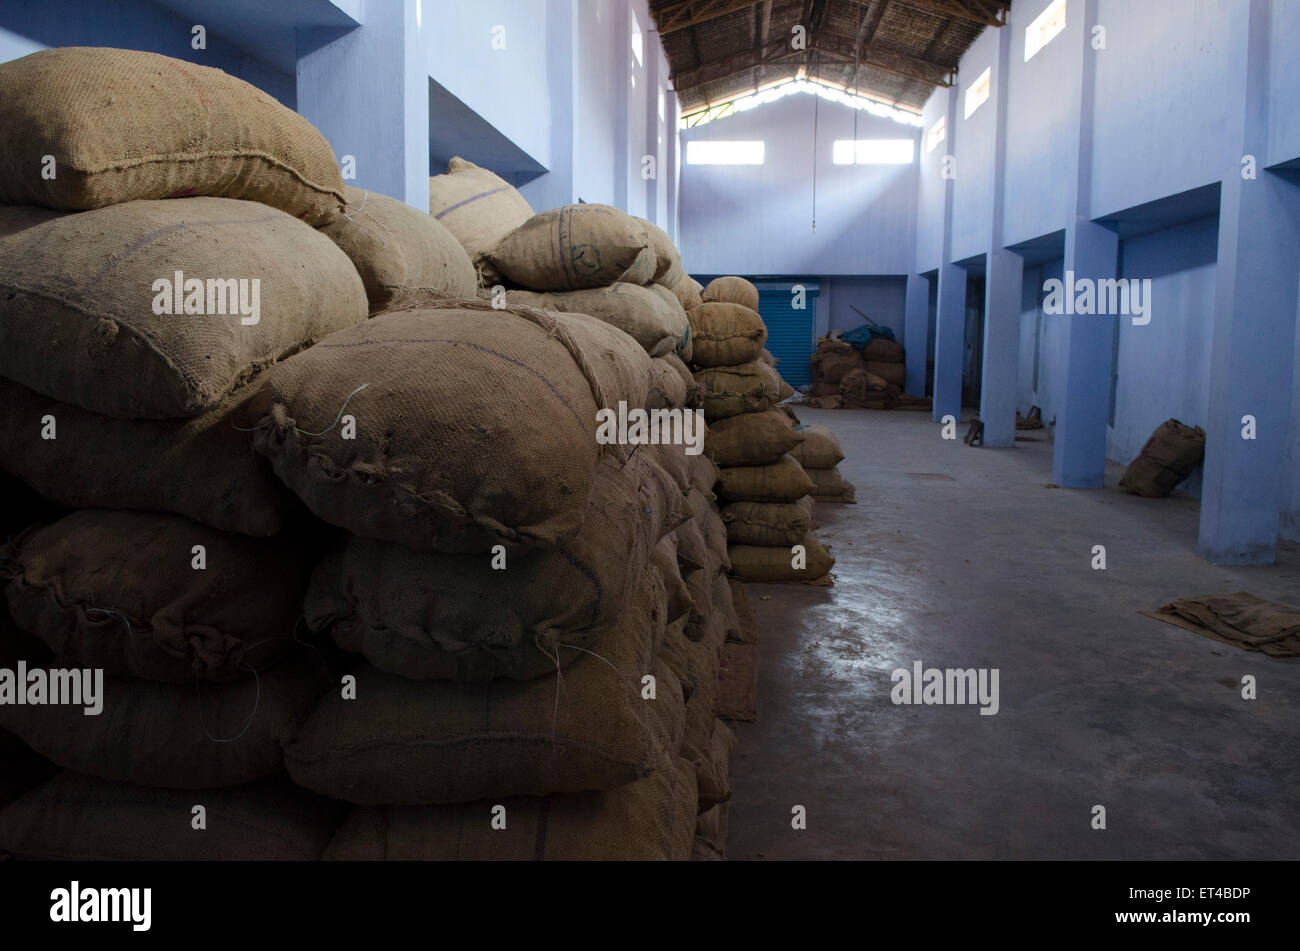 Large sacks are stacked at a ginger distribution warehouse in Fort Cochin, Kerala, South India - Stock Image